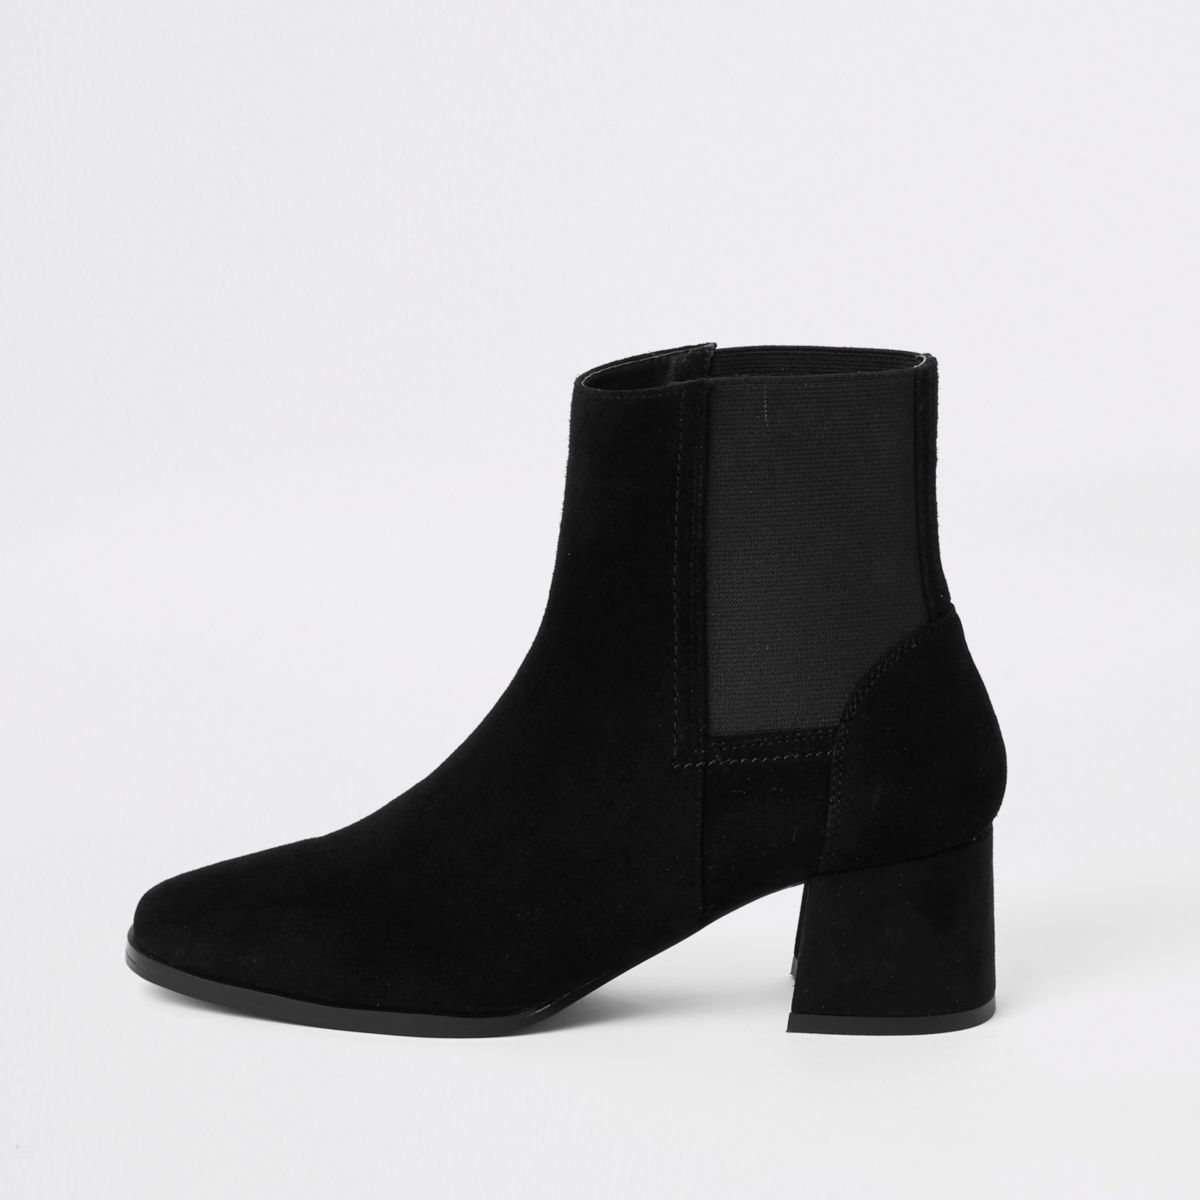 Black square toe block heel ankle boots